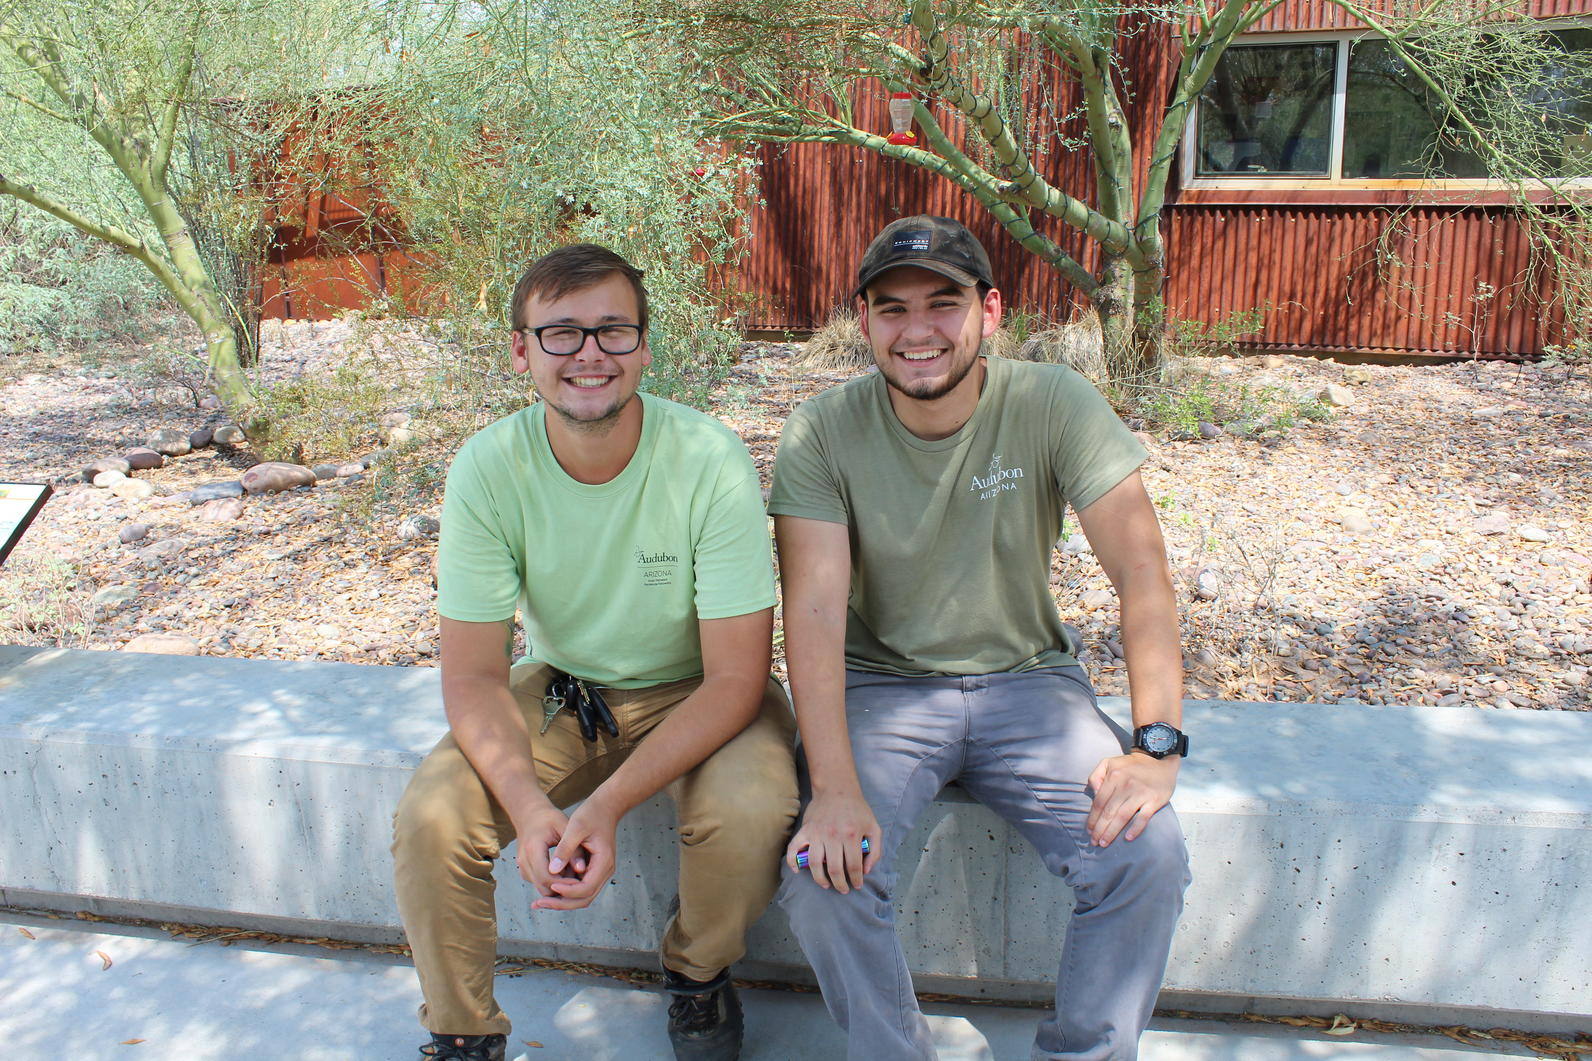 Dan Hite and River Pathways intern turned Mackenzie Fellow, Michael Montano, will both be leading River Pathways trips this Fall.  From the students they work with, we'll recruit next year's field crew.